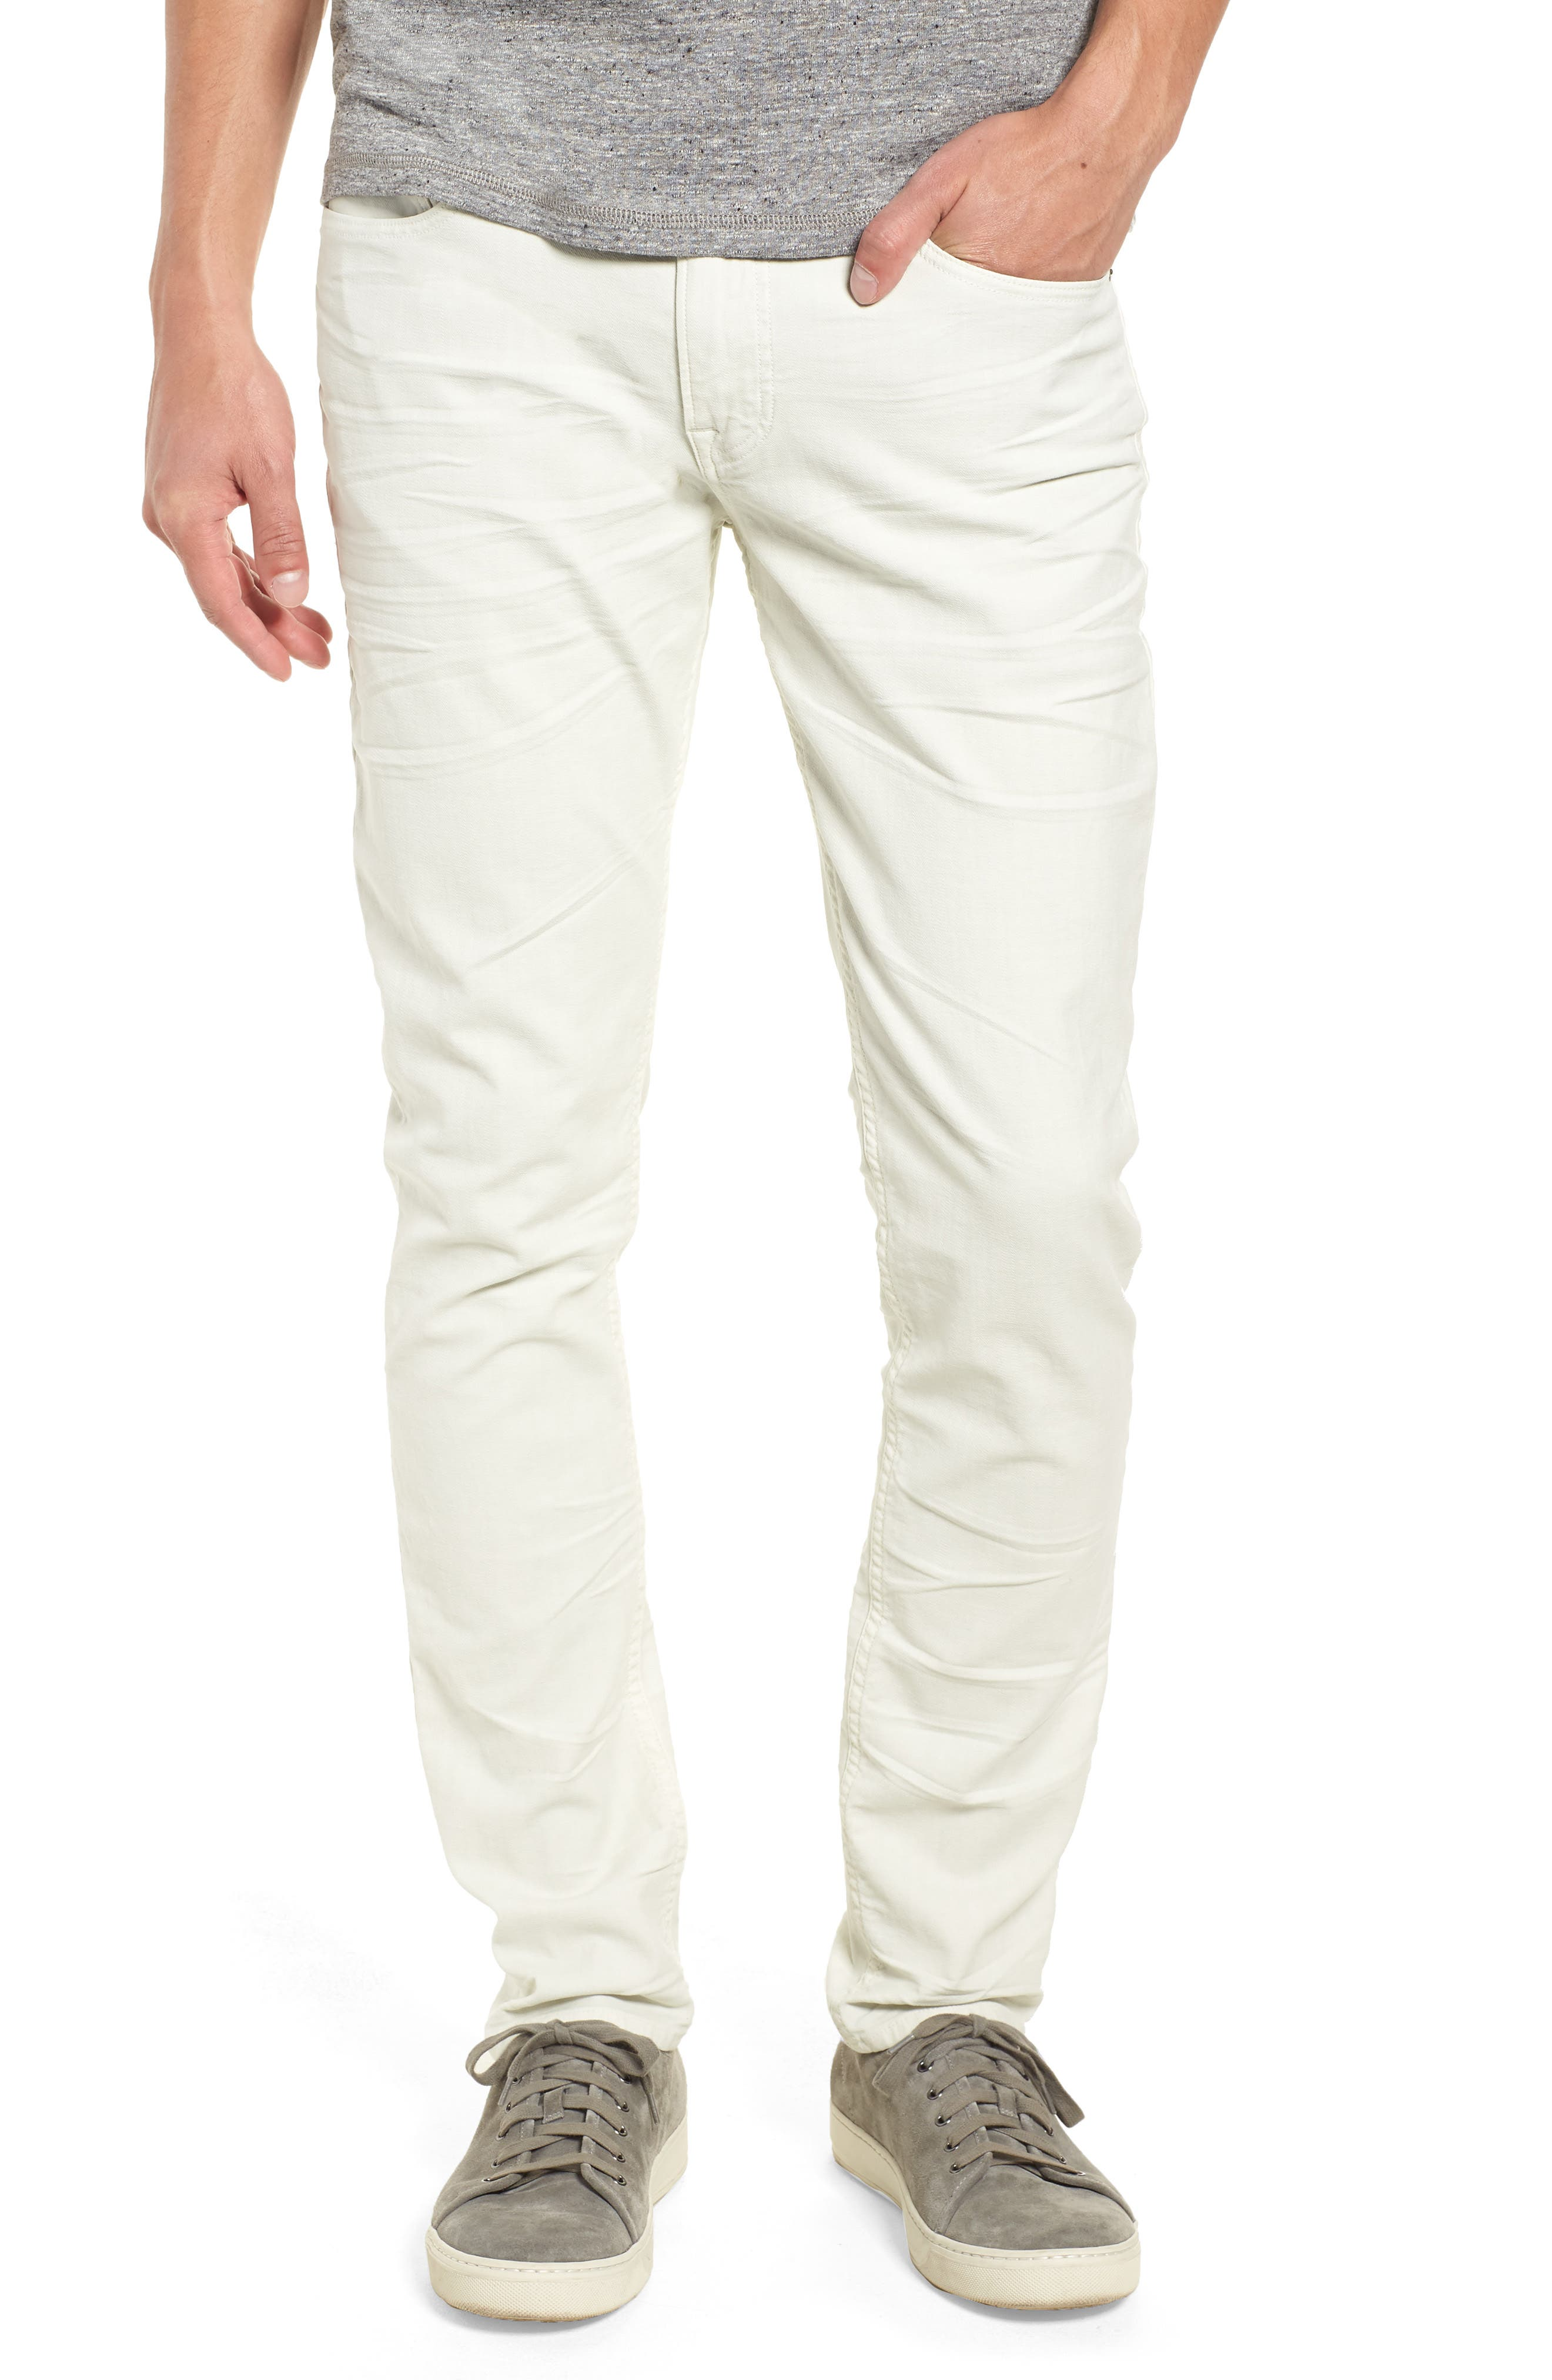 HUDSON JEANS Axl Skinny Fit Jeans, Main, color, DIRTY WHITE